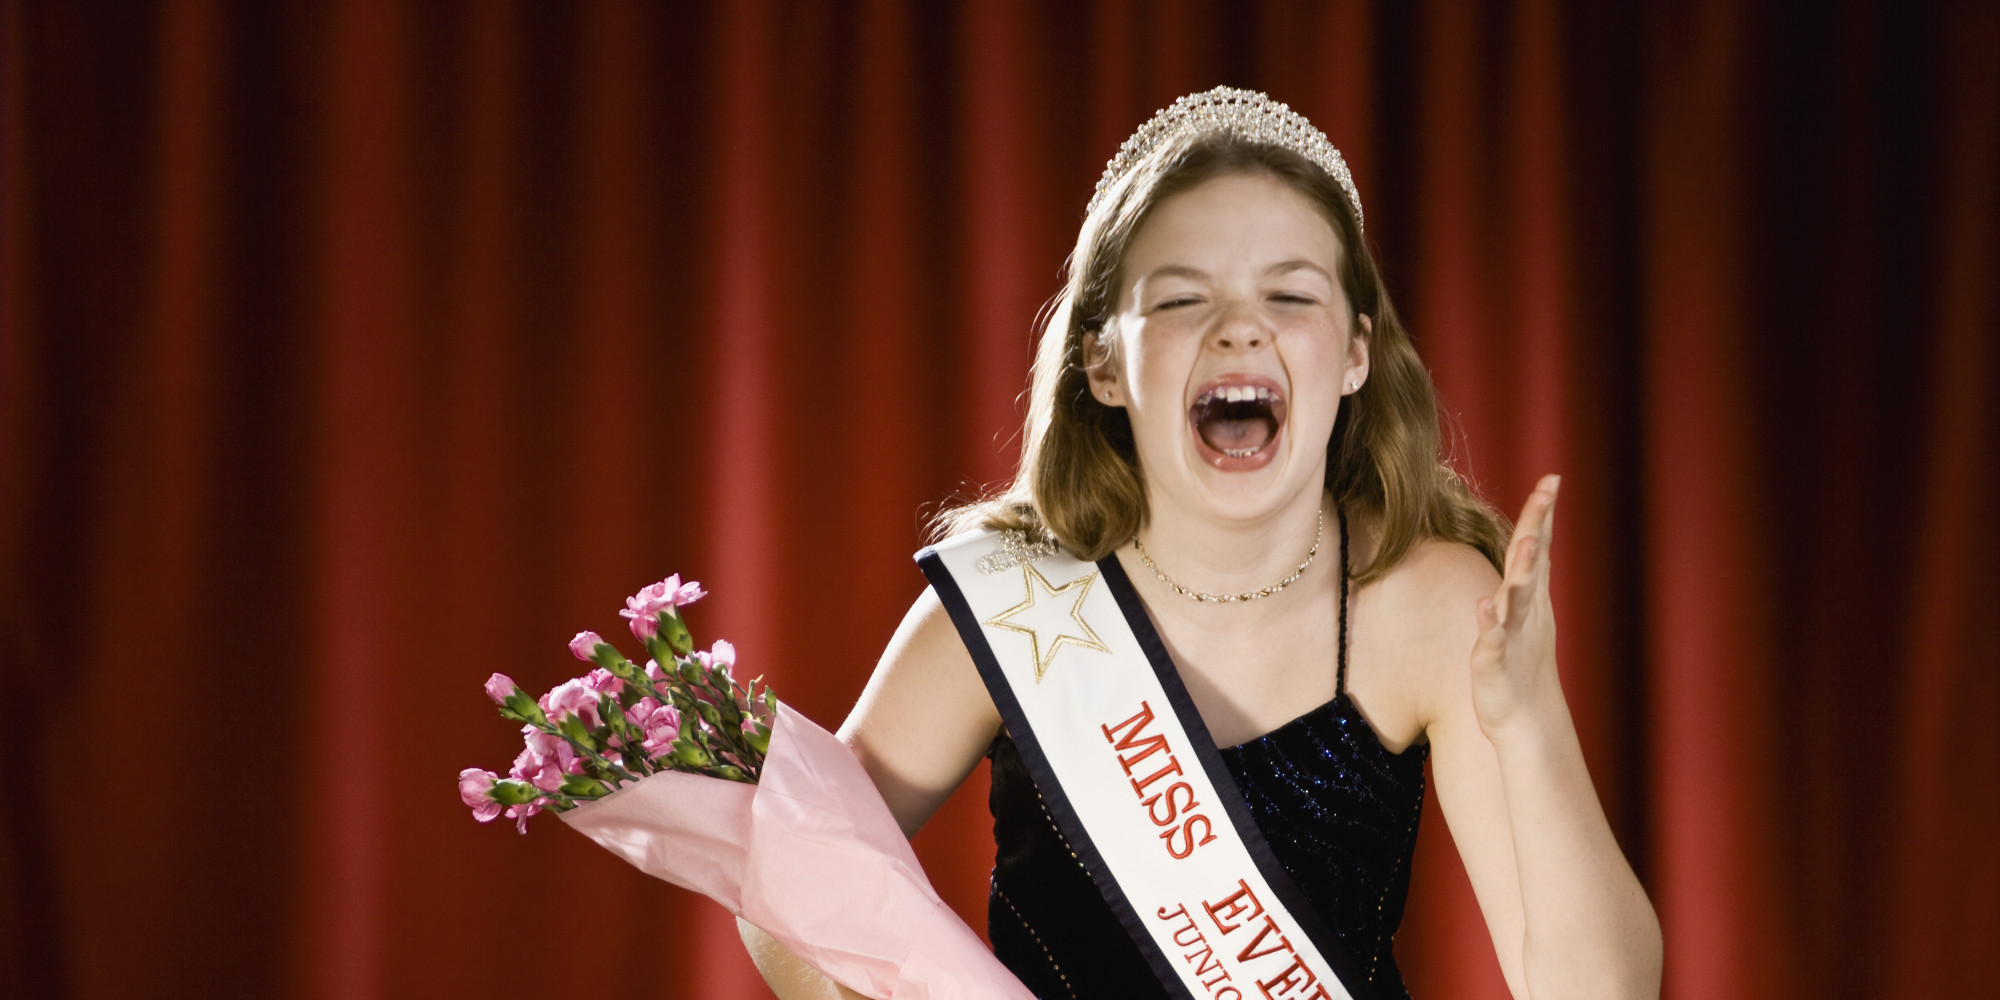 o-CHILD-PAGEANTS-facebook.jpg (2000×1000)